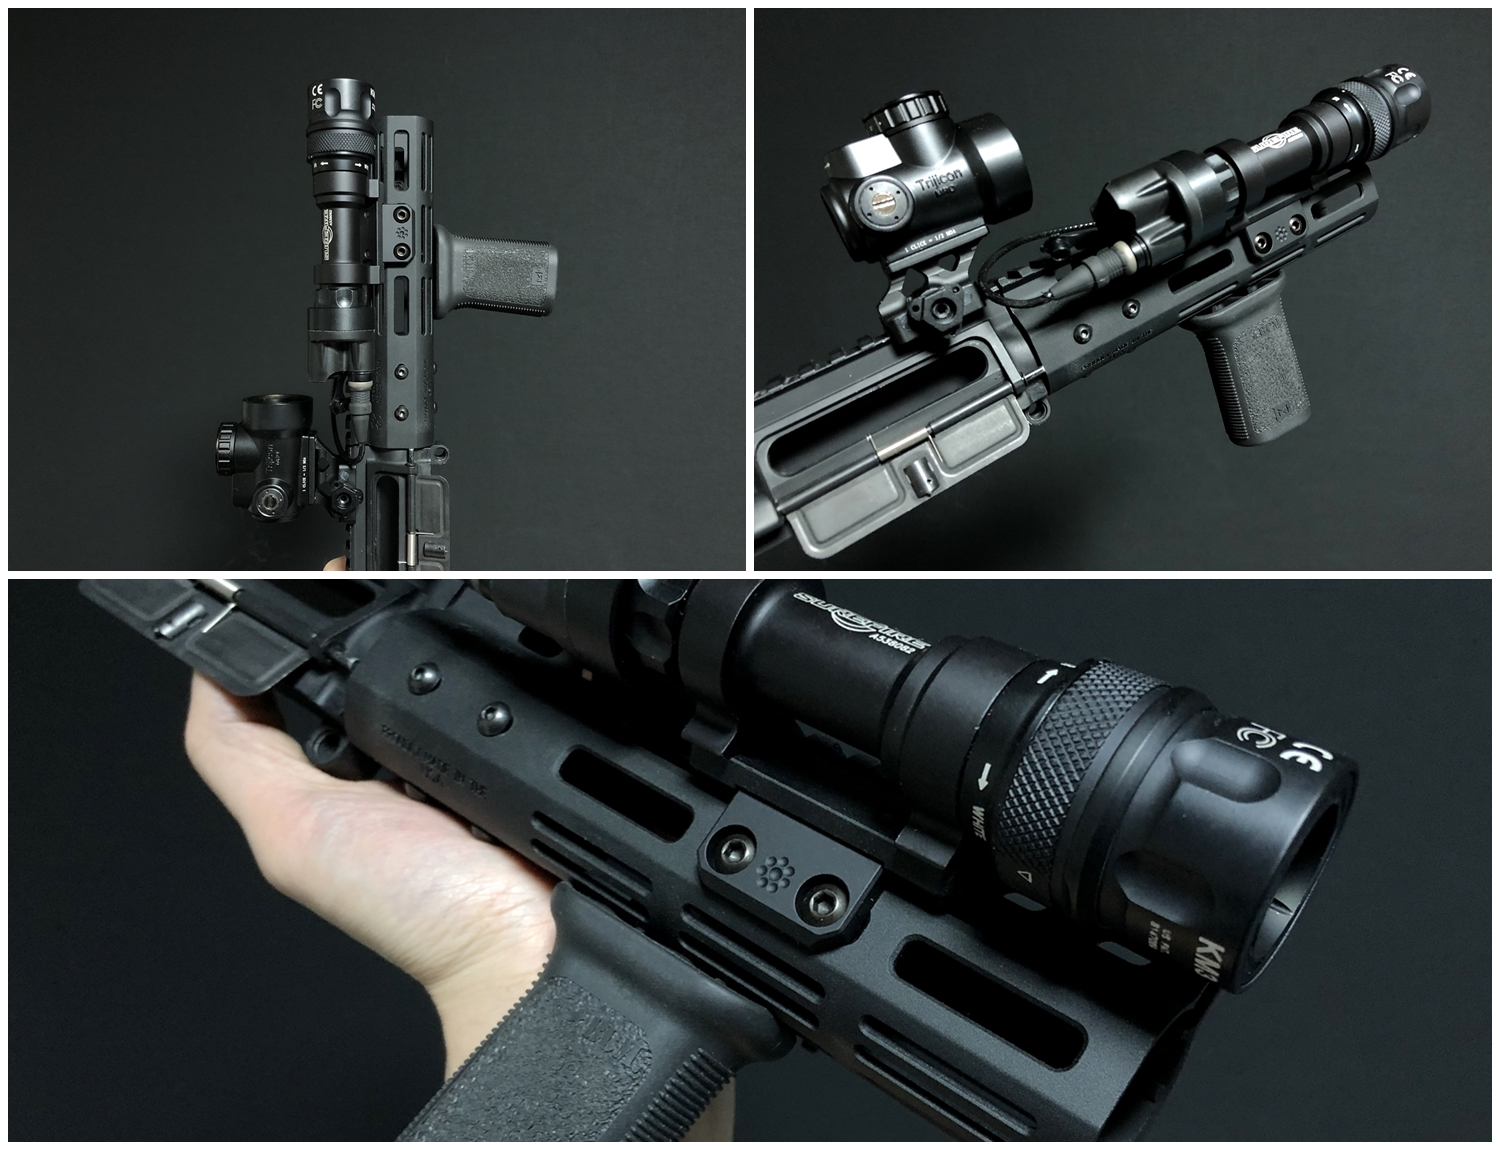 17 実物 ARISAKA DEFENSE LLC OFFSET M620 ADAPTER & SCOUT MOUNT M-LOK & SUREFIRE M952V 実物 アリサカ